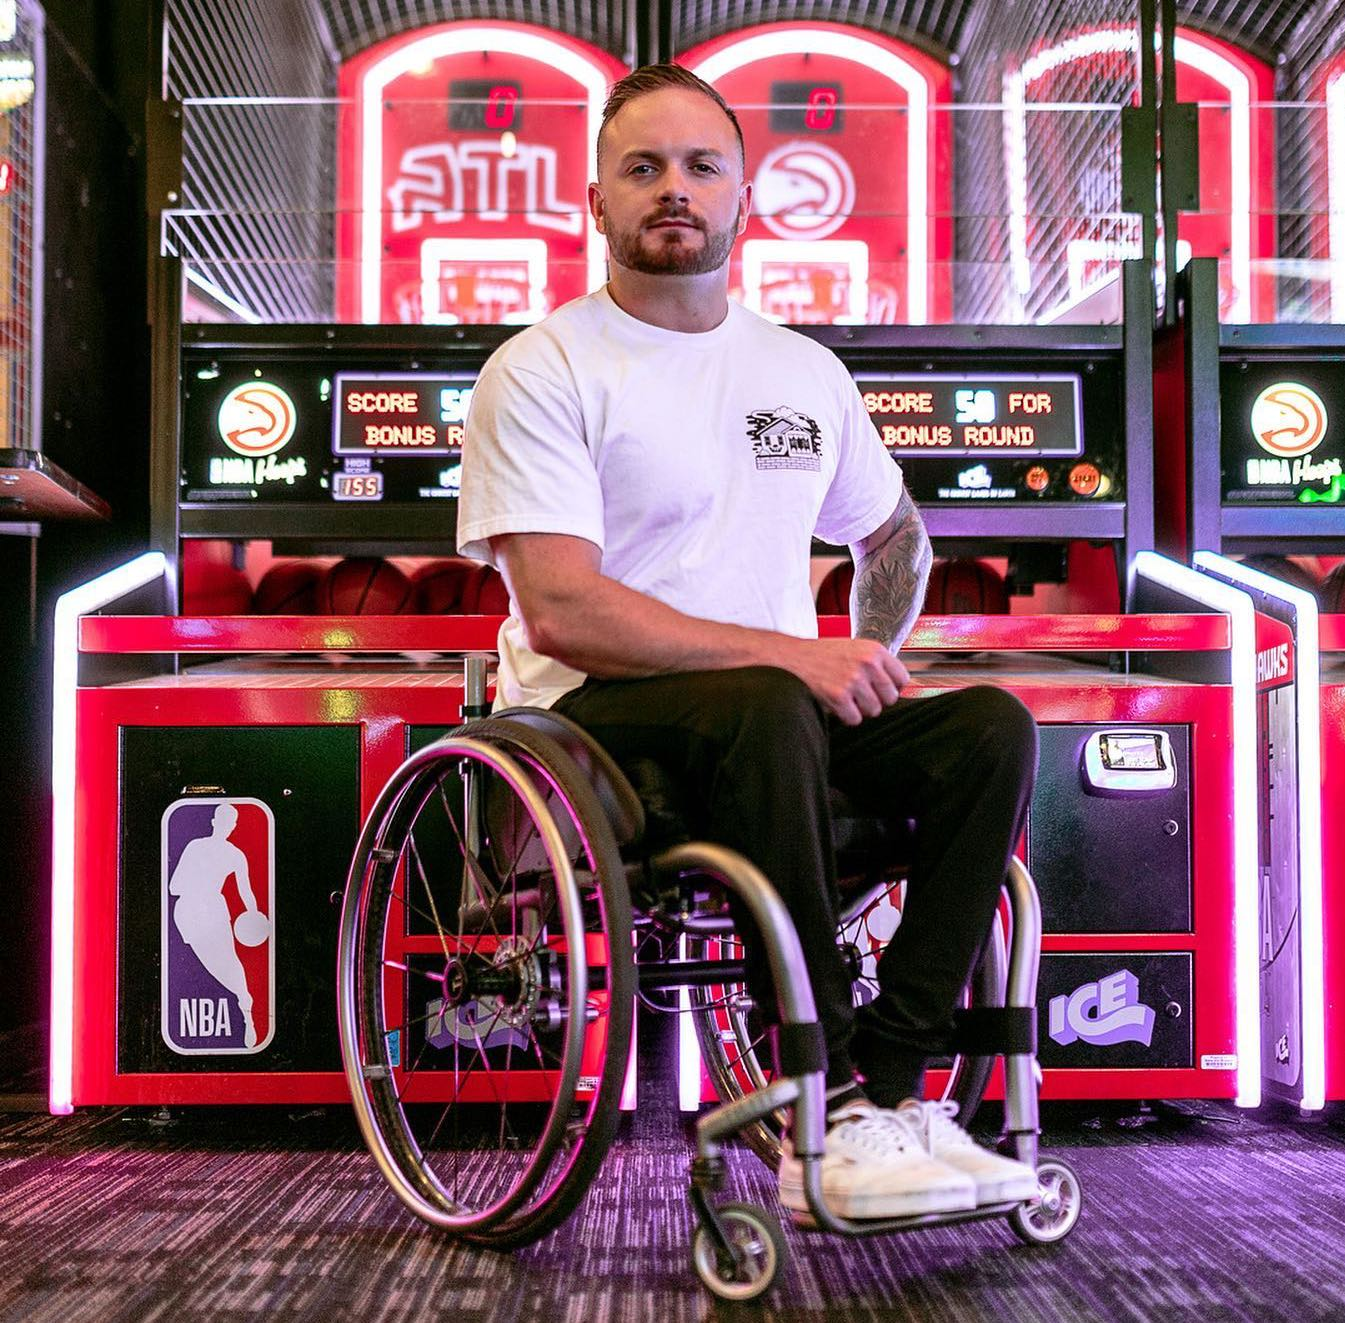 Richard Corbett in a white t-shirt and black pants sitting in his wheelchair in front of some basketball arcade games.